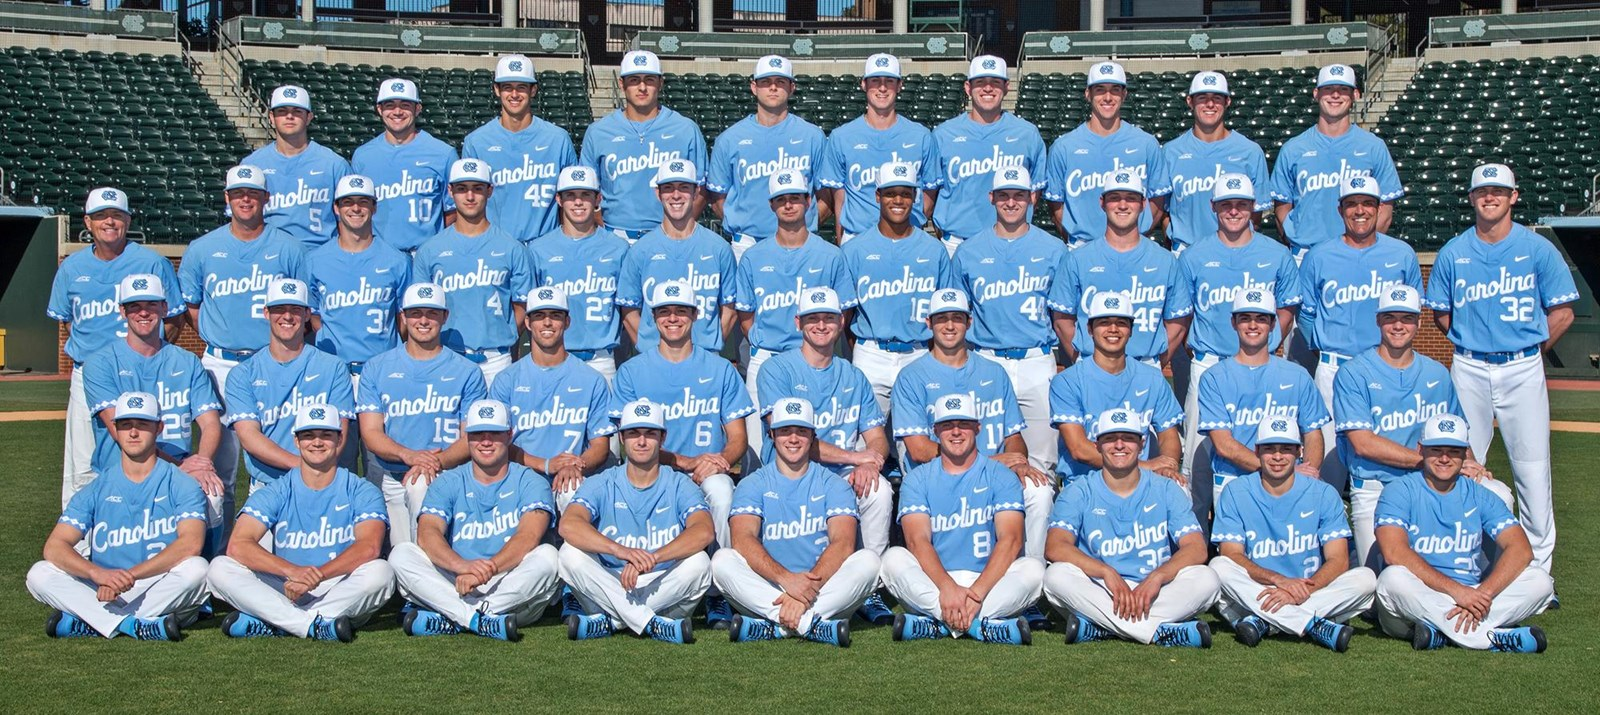 2018 baseball roster - university of north carolina athletics